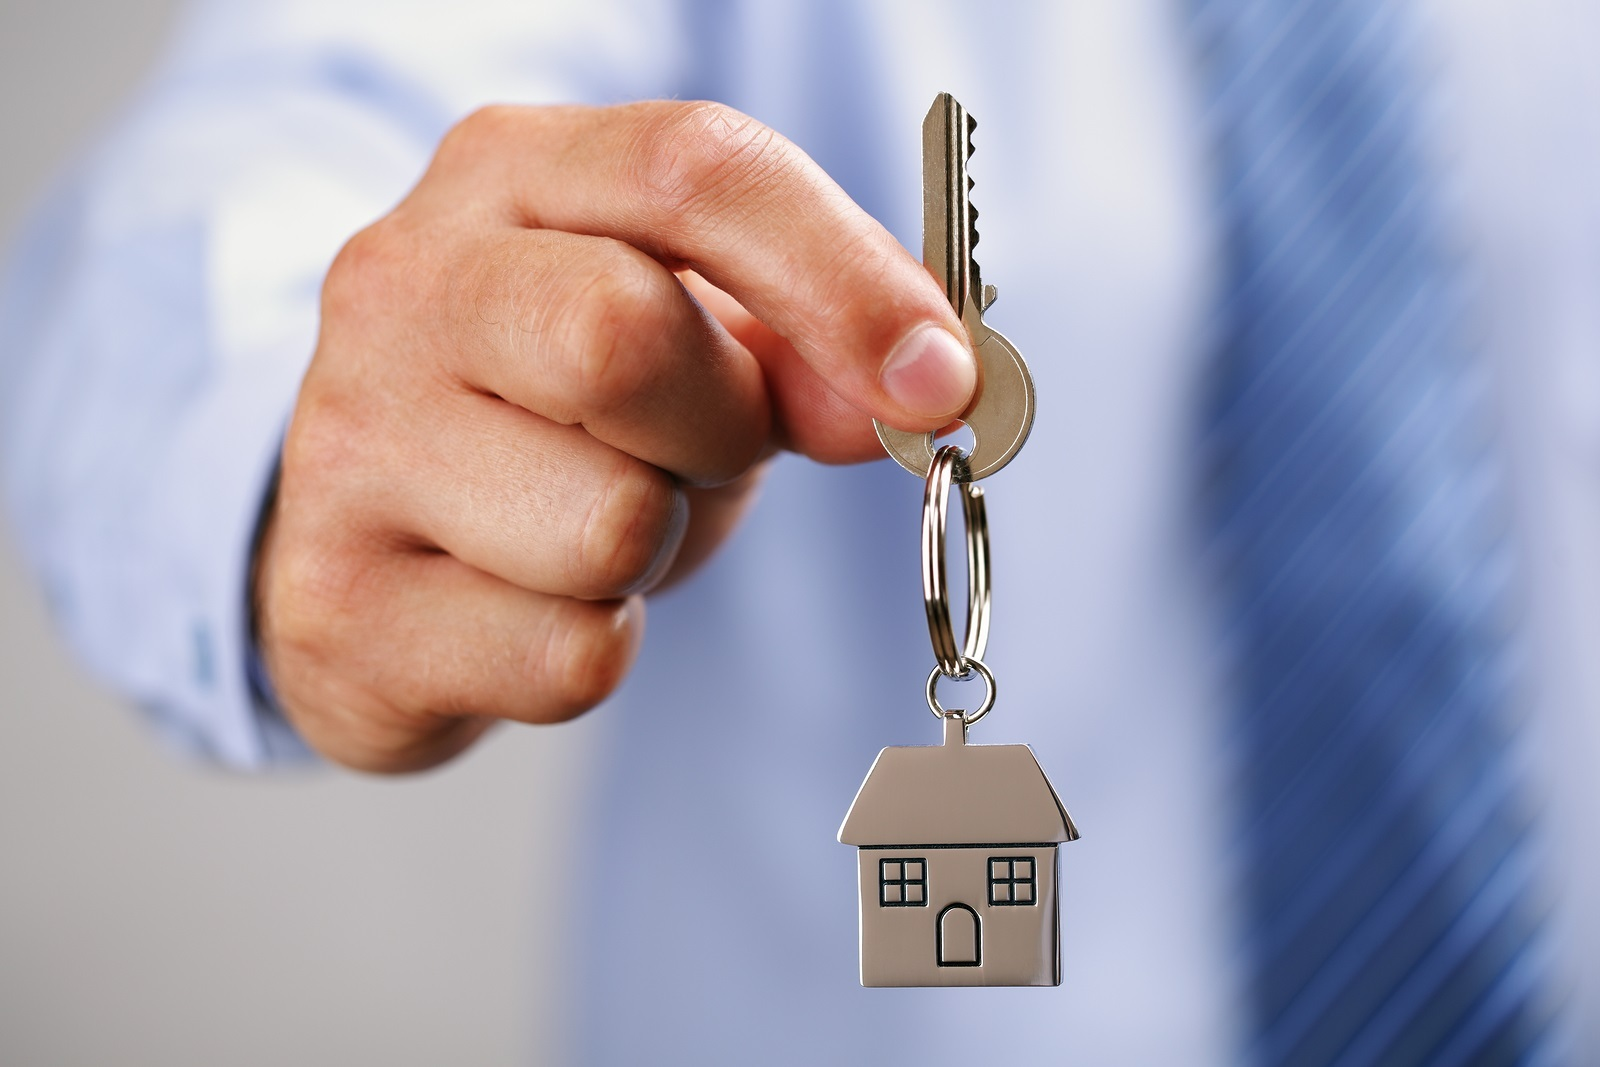 Search For The New Real Estate Property In Delhi